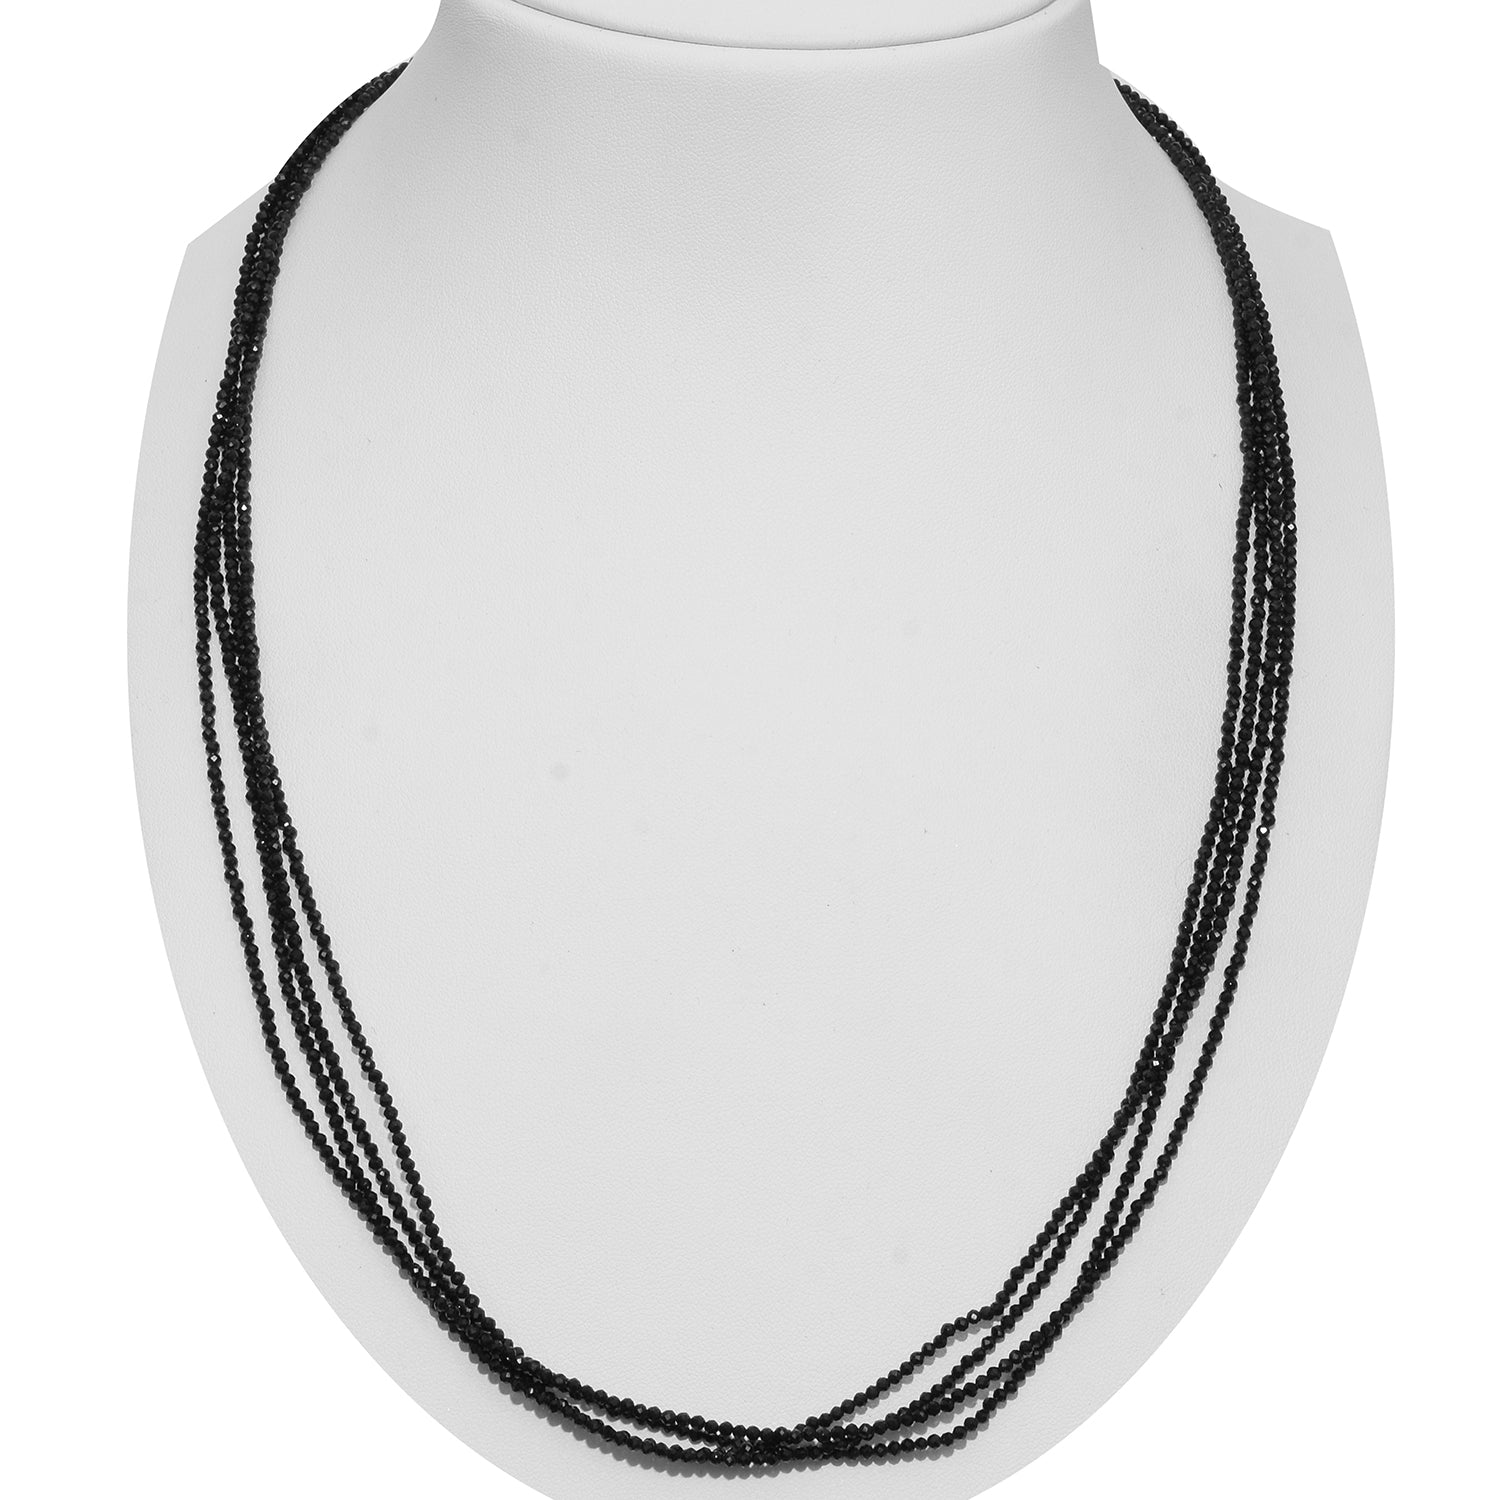 Thai Black Spinel Sterling Silver Necklace (100 in) TGW 80.00 cts. - Houzz of DVA Boutique